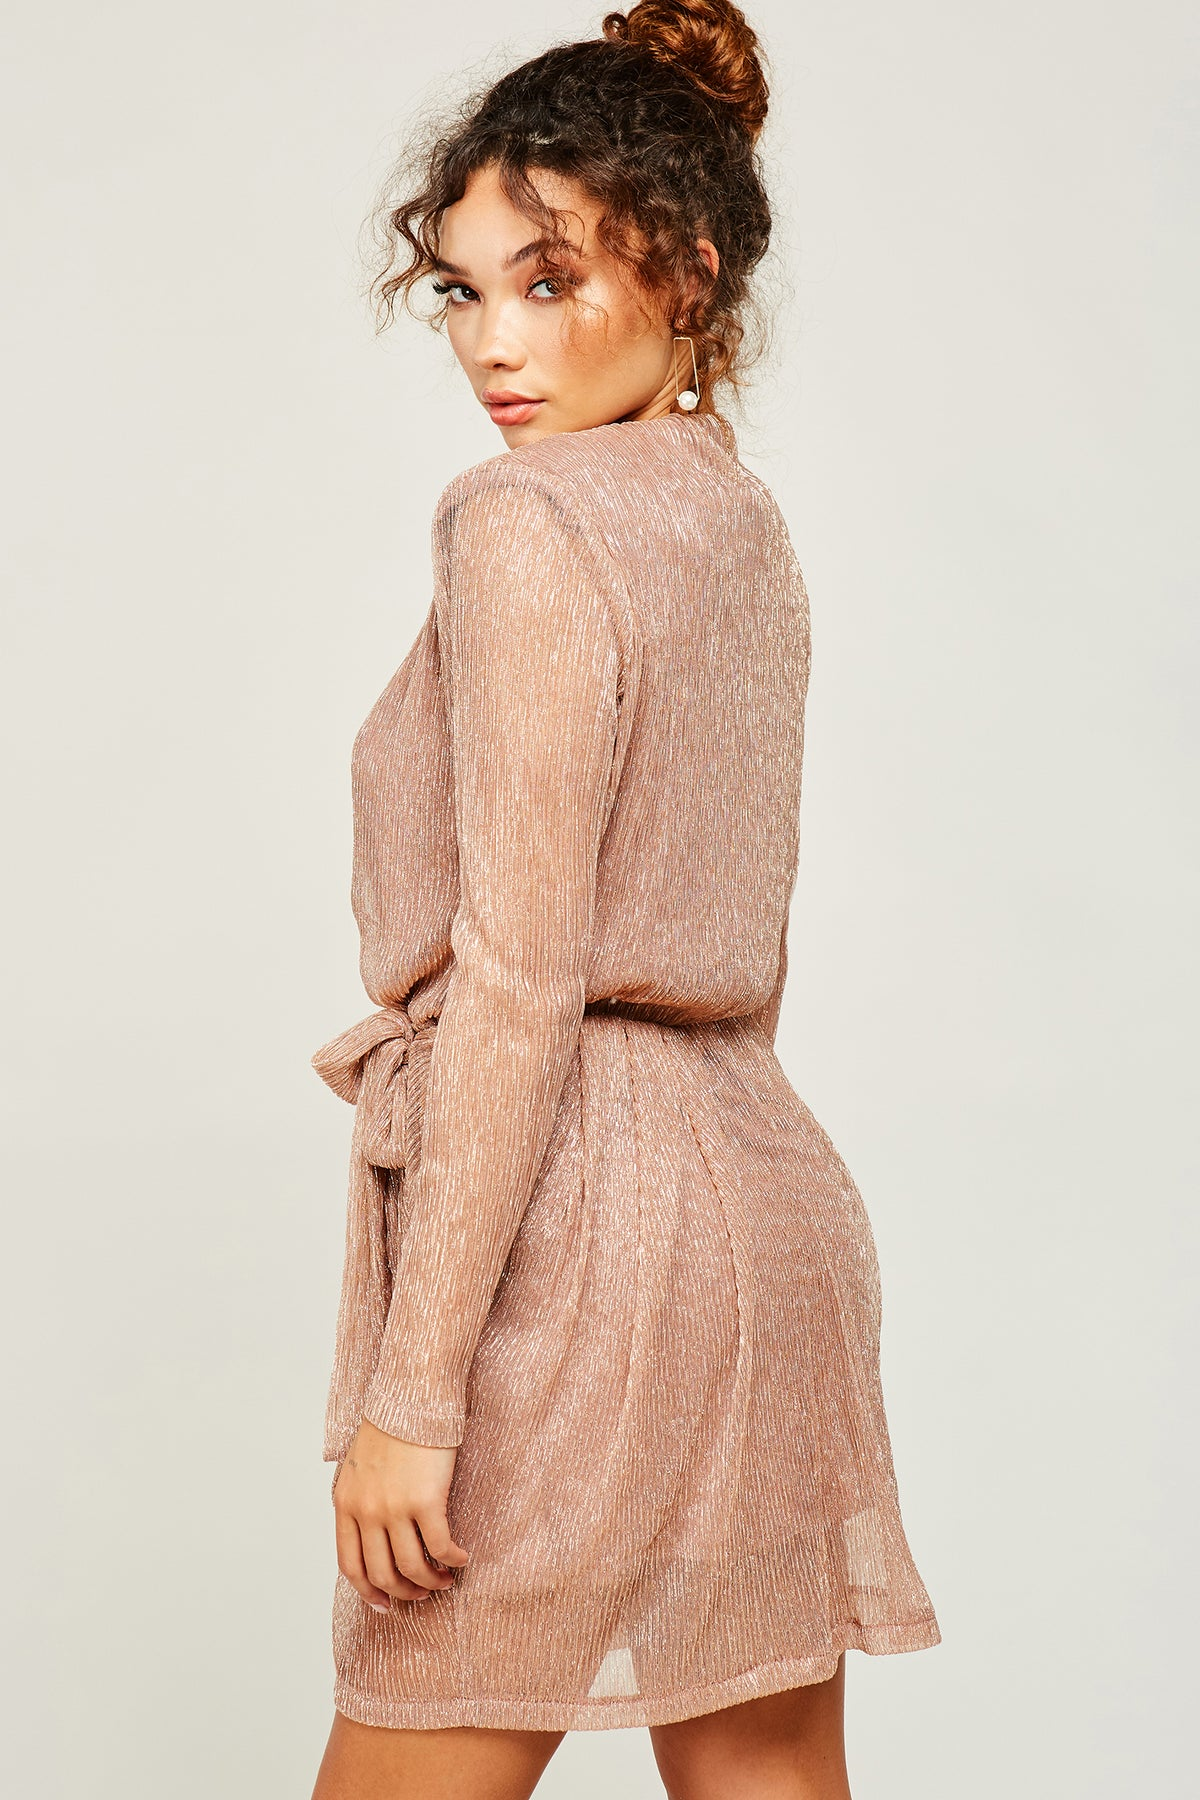 Bottega Rose Gold Mini Dress